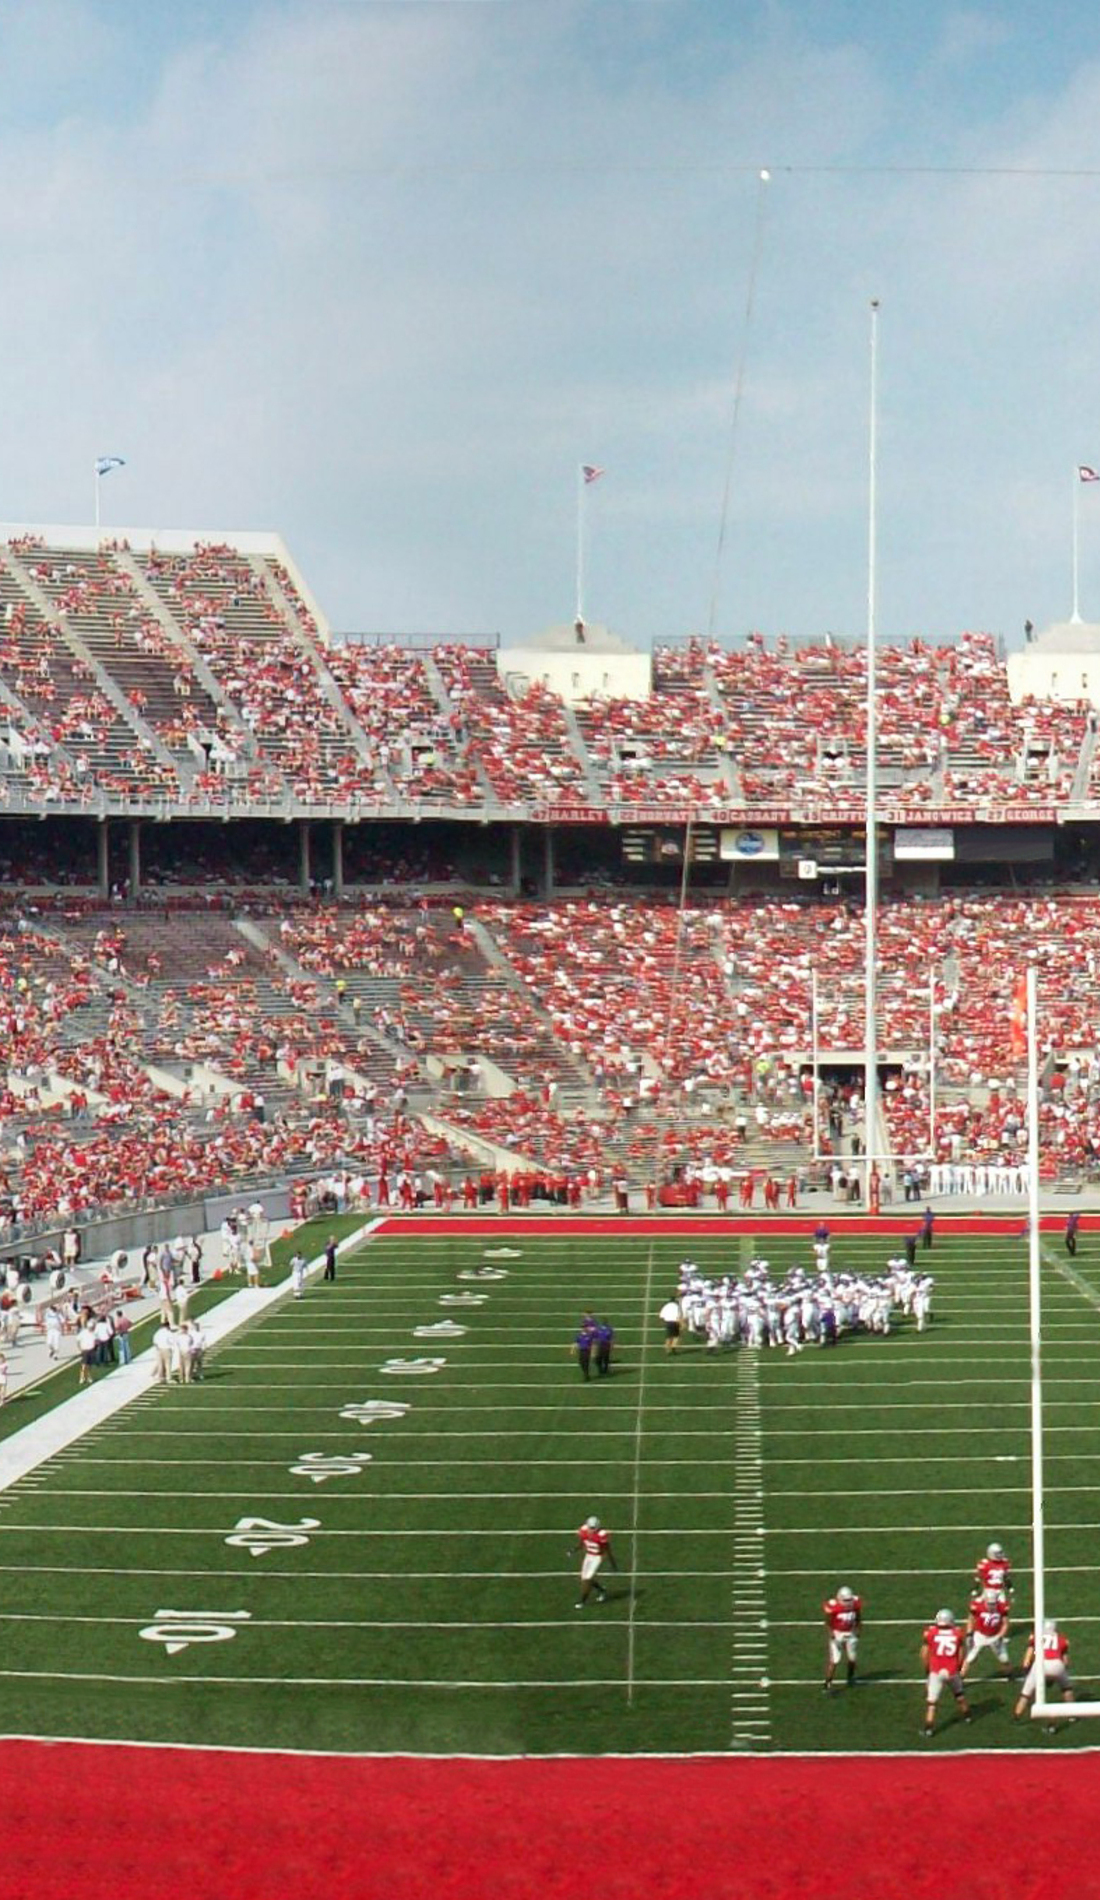 A Ohio State Buckeyes Football live event